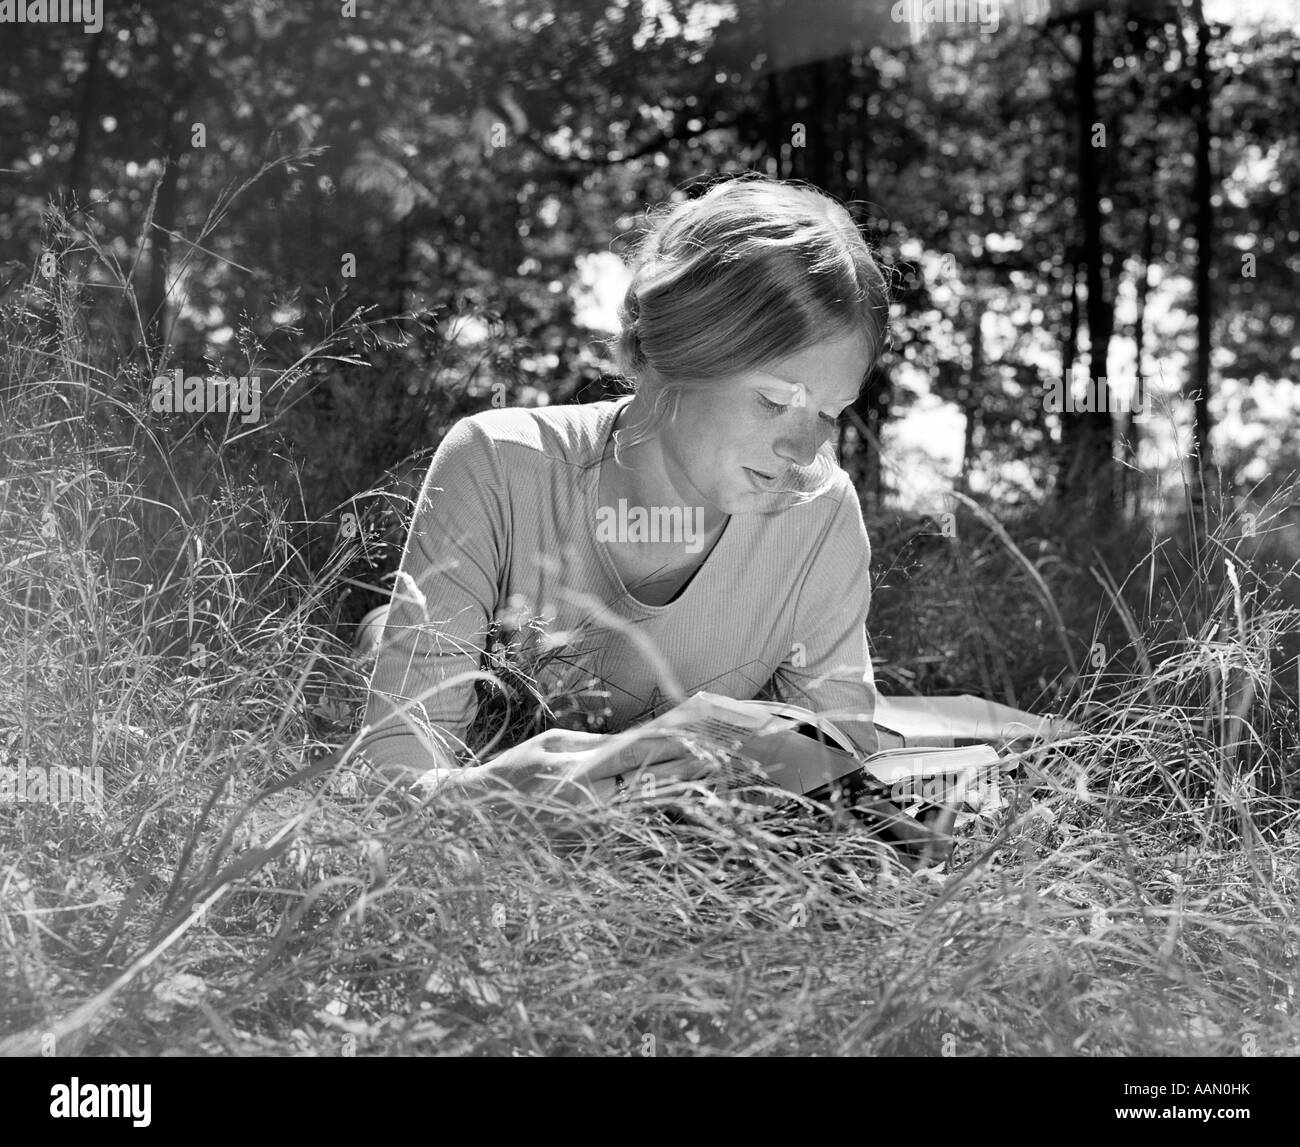 70s Black And White Stock Photos Images Alamy